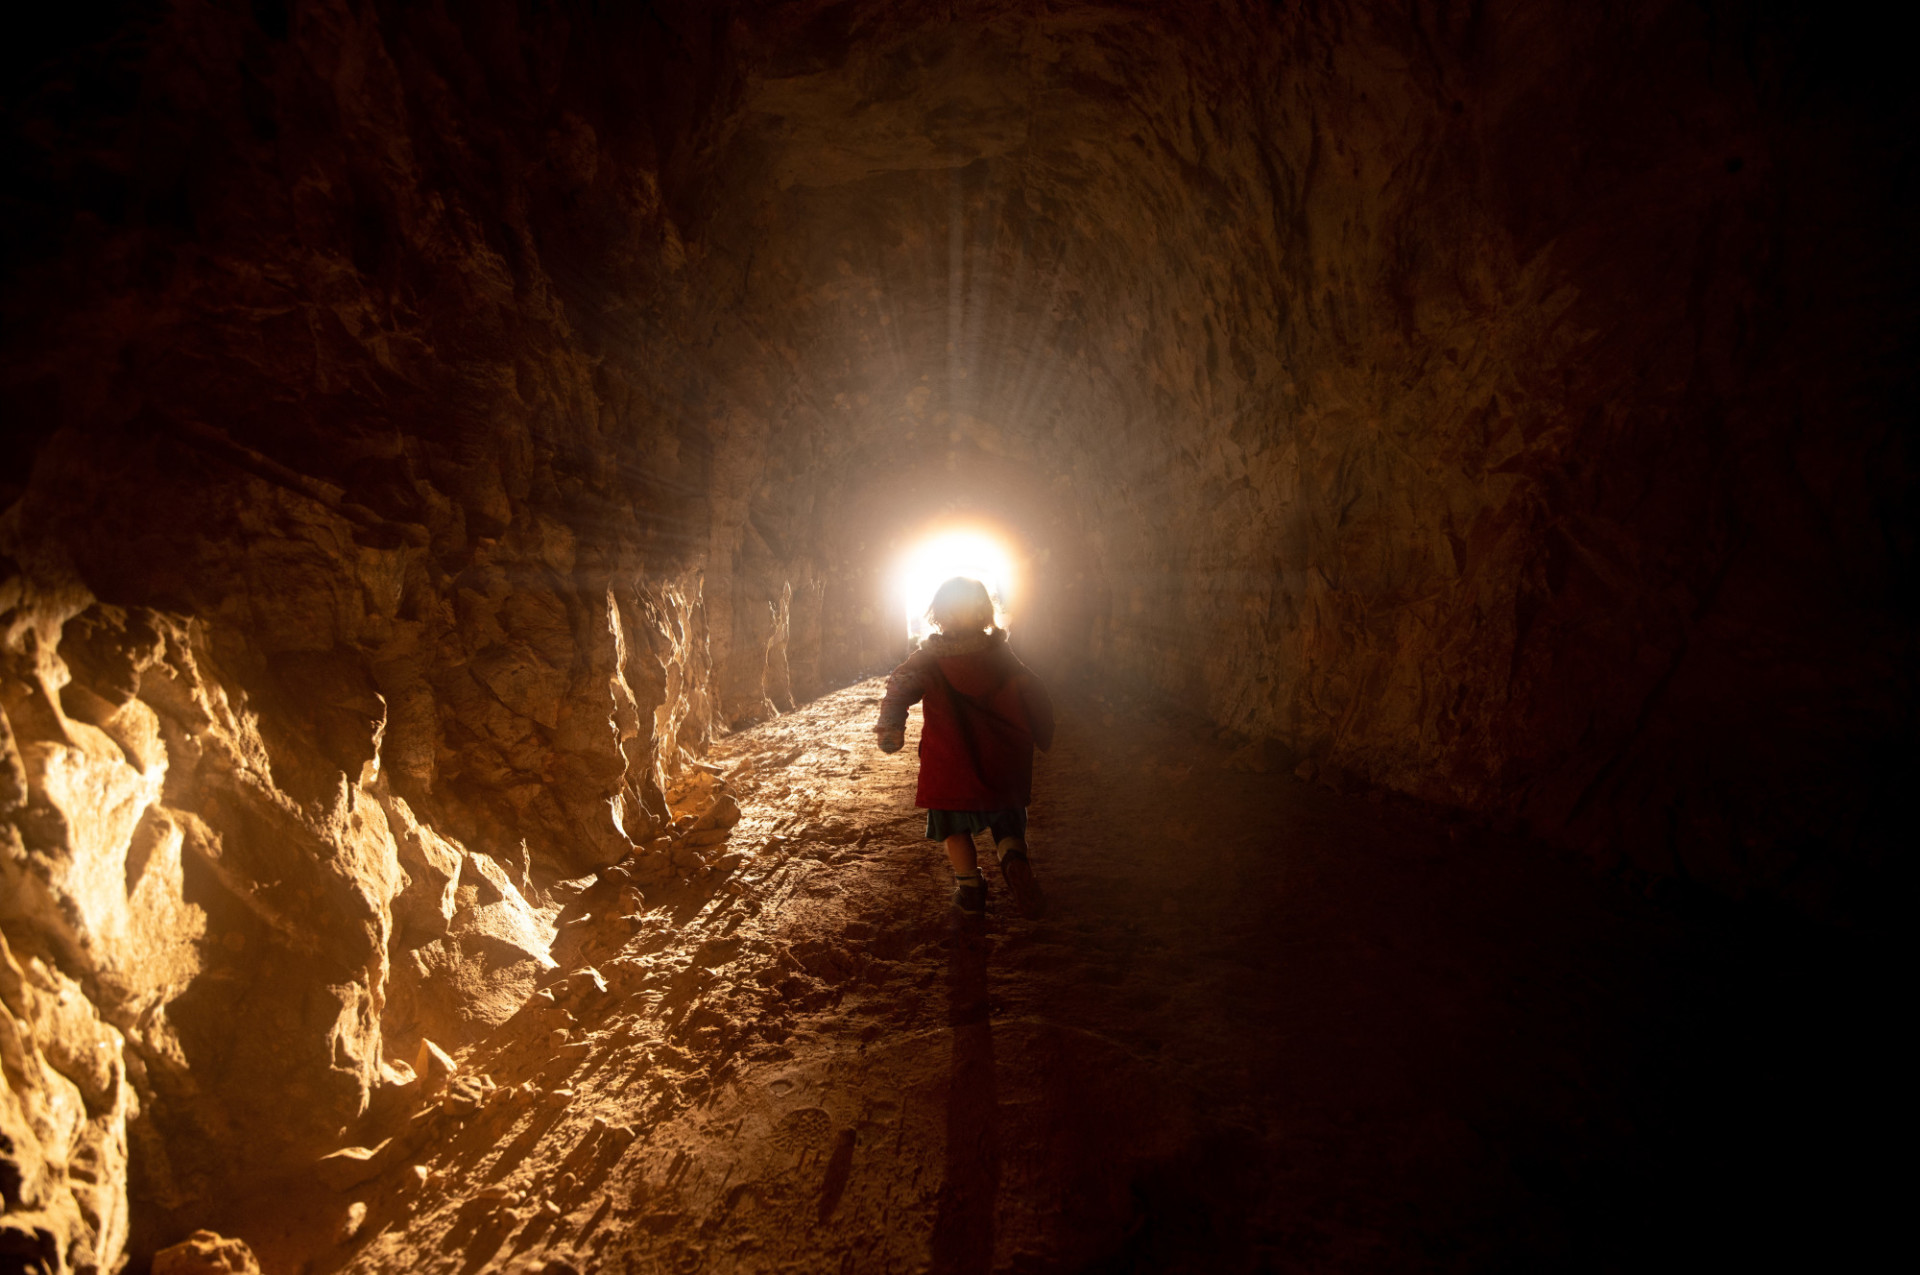 Little girl is running towards the light at the end of the tunnel